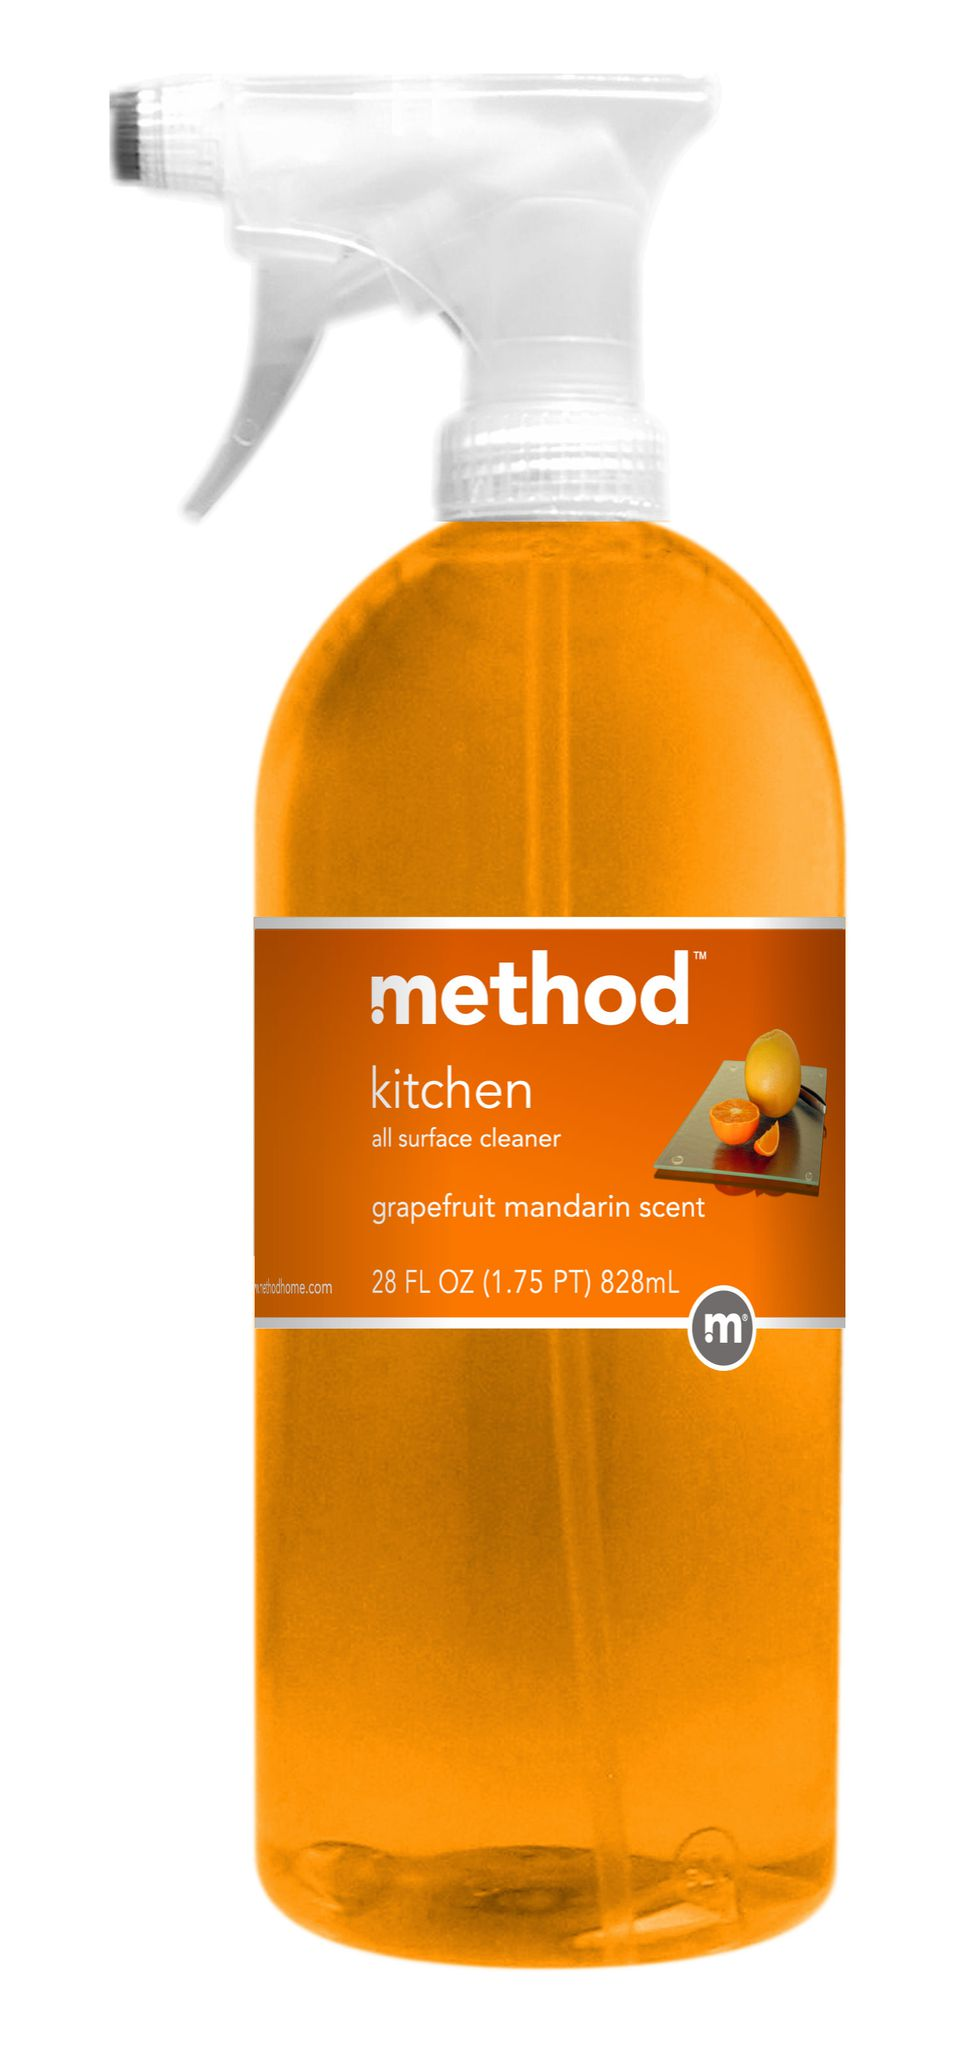 Method Kitchen All Surface Cleaner